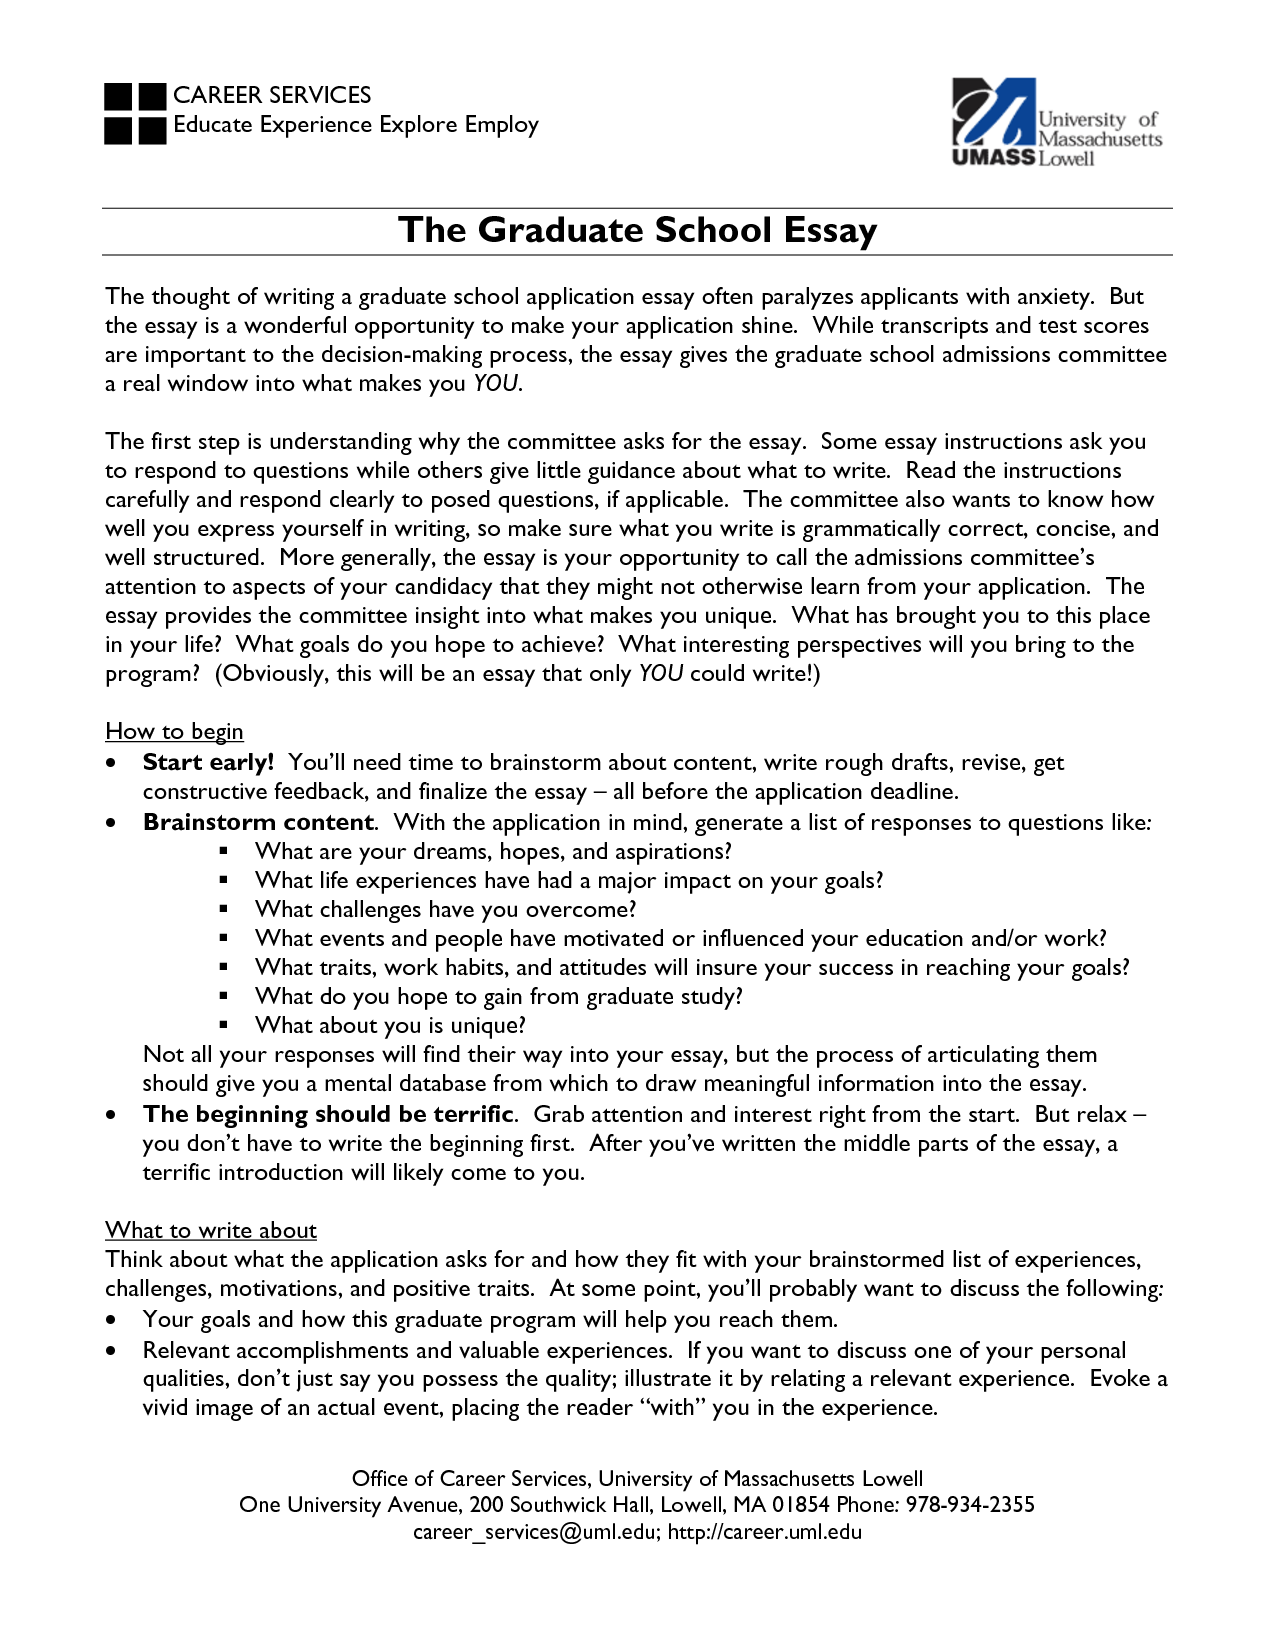 015 Essay Example 36nyax20x5 Excellent Graduation Sample High School Essays For 8th Grade Full